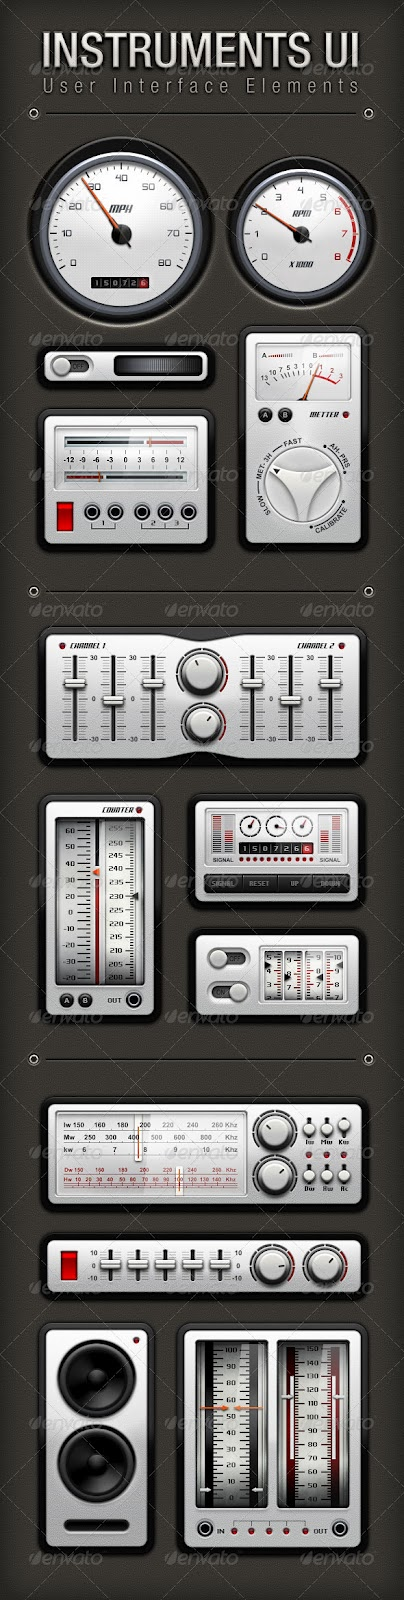 Instruments User Interface Elements